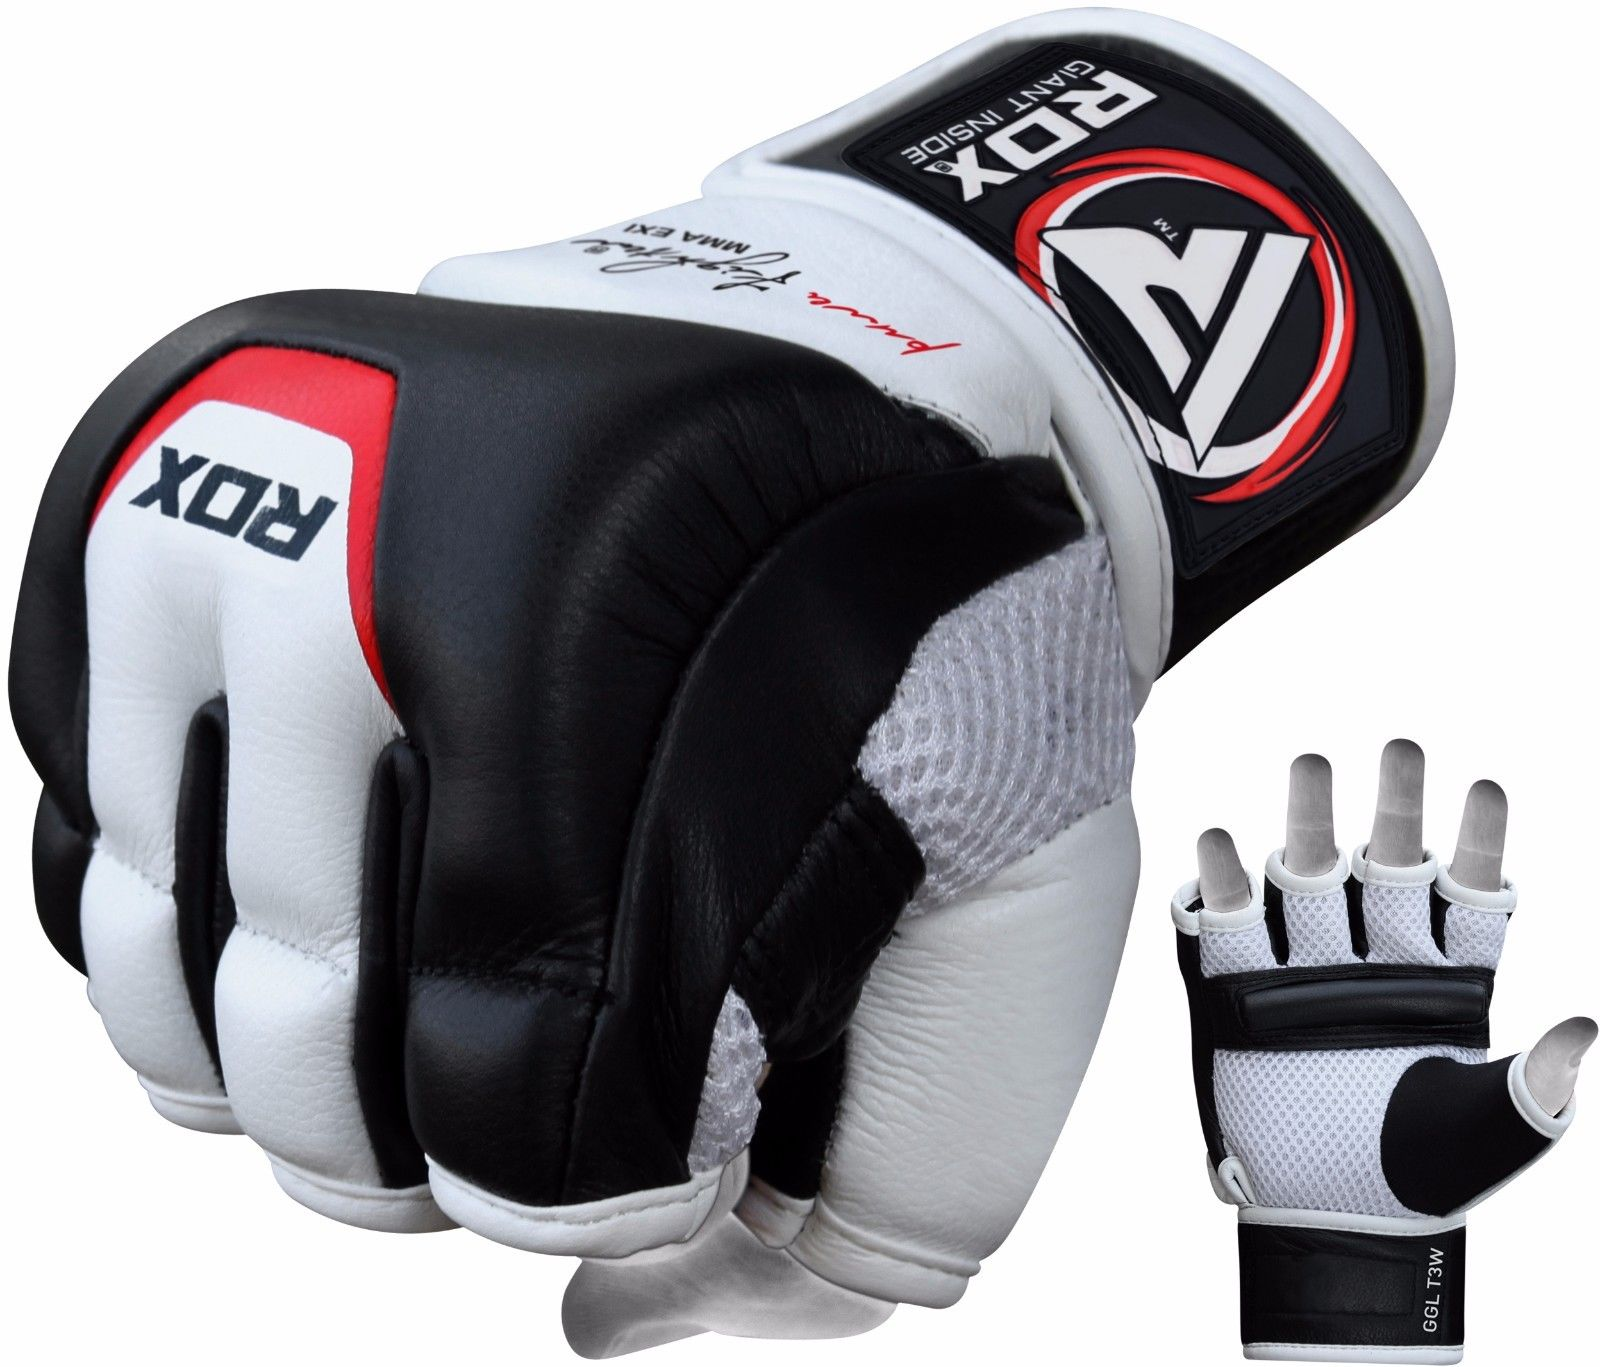 RDX MMA Gloves Punching Bag Mitts Cowhide Leather Grappling Training UFC by De Caprio